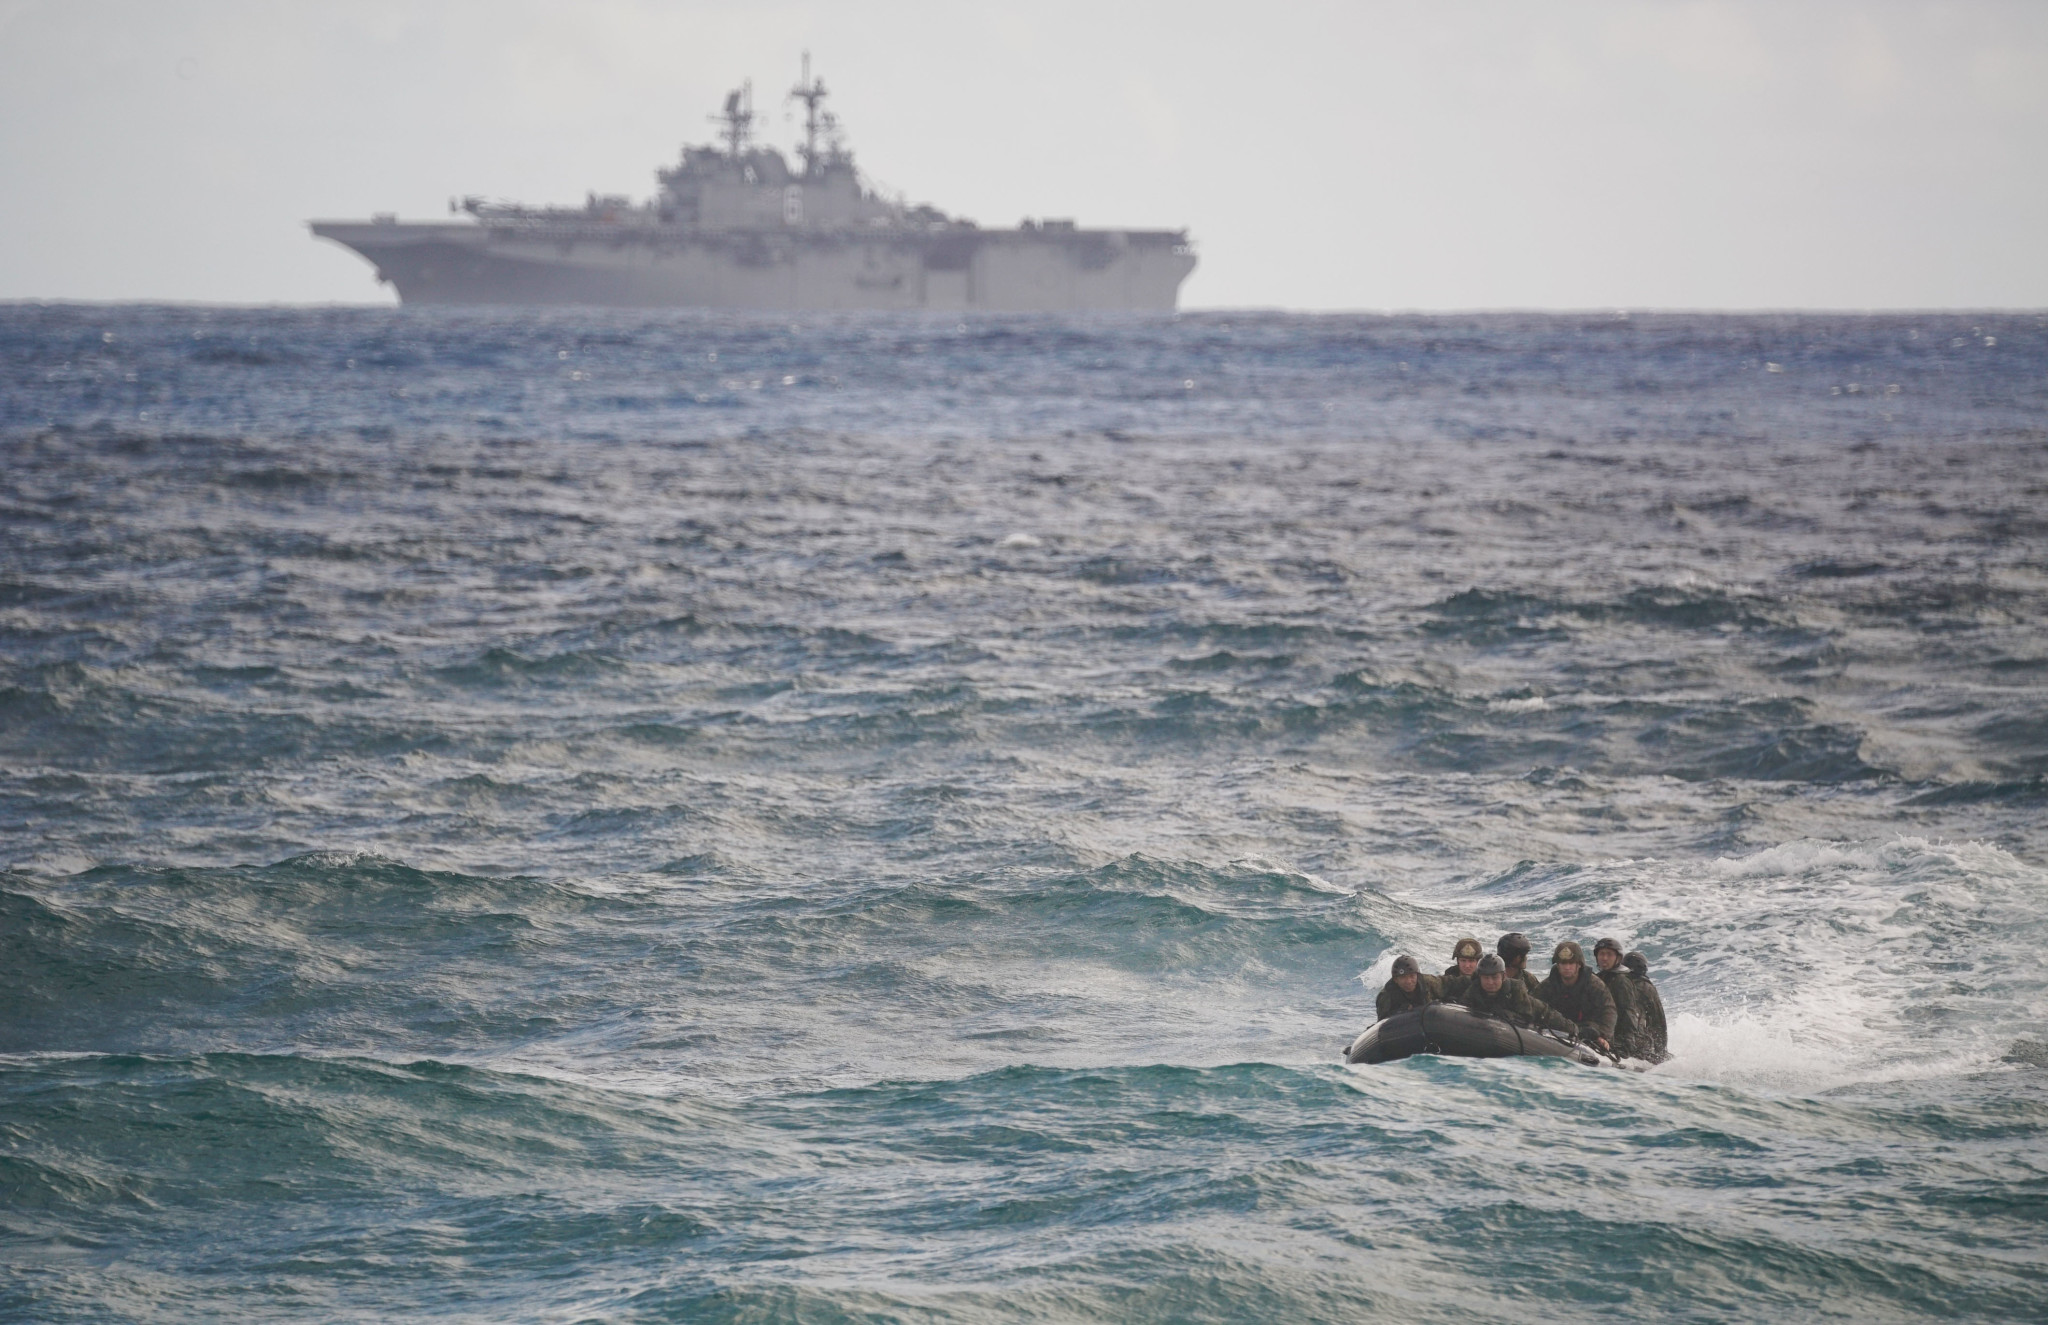 <p>With the USS America amphibious assault ship in the background, a reconnaissance team approached the beach in an inflatable raft.</p>